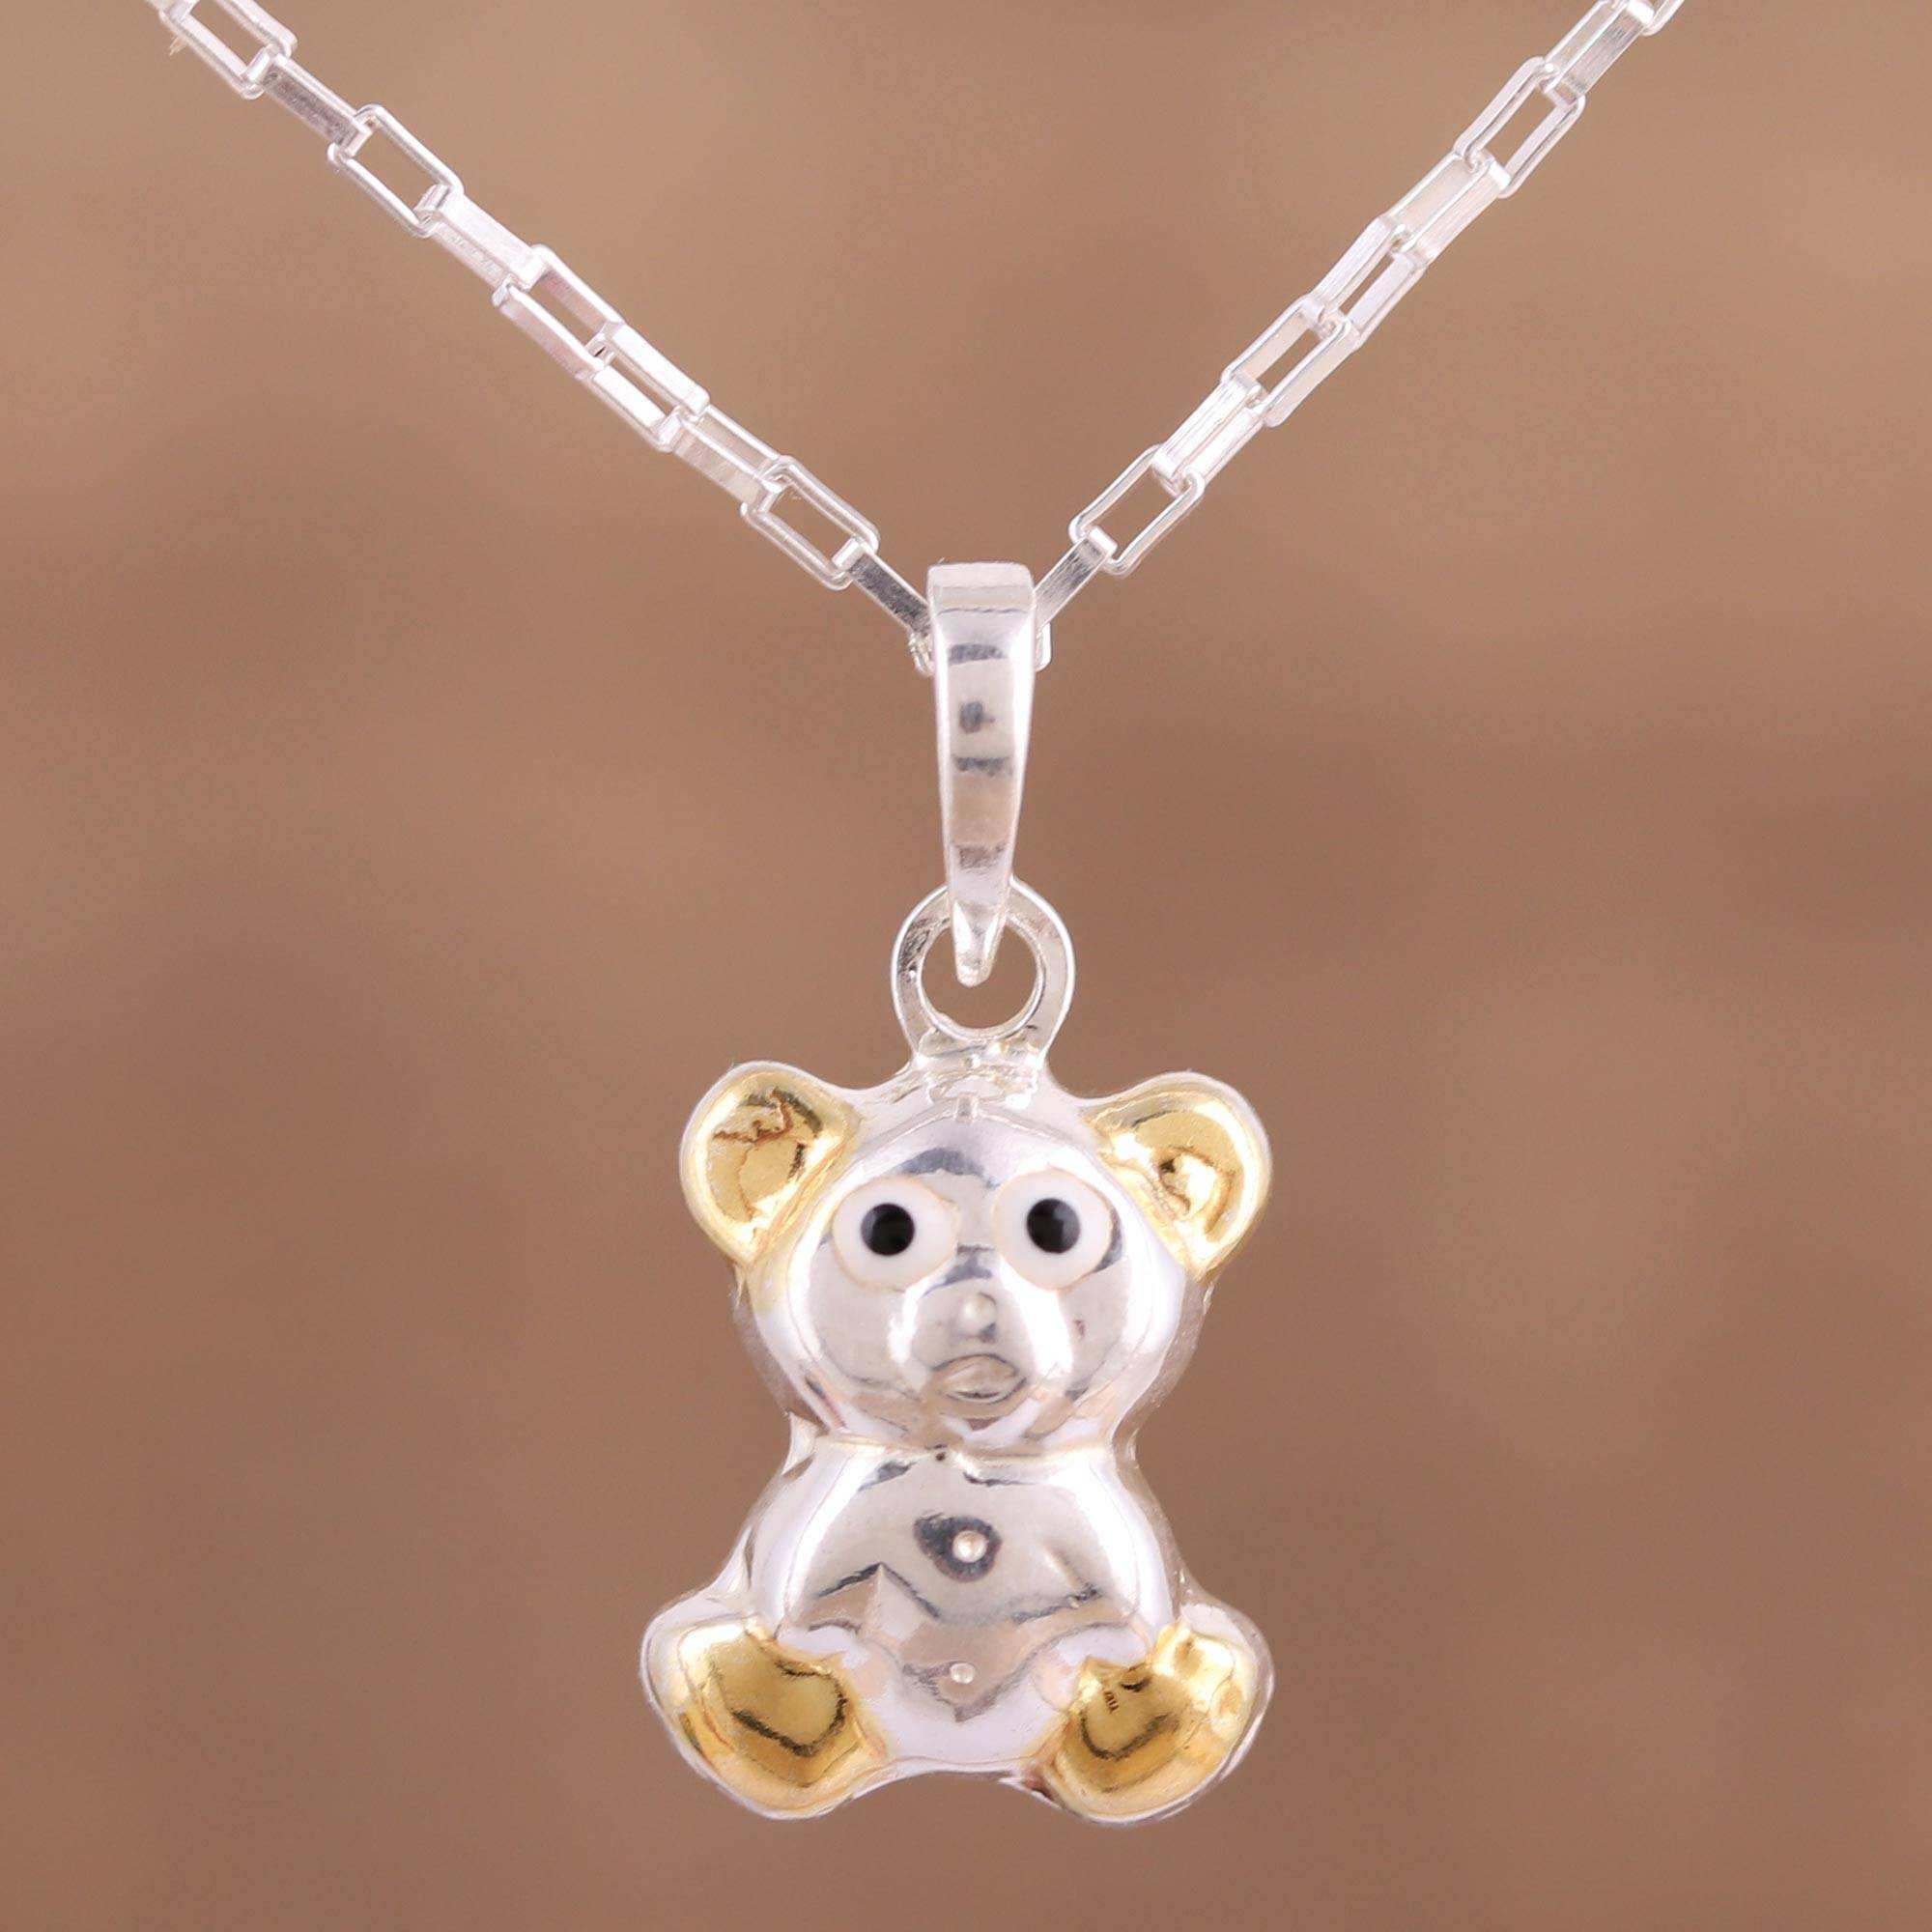 love com bear dp jewelry pendant teddy amazon crystal necklace swarovski elements kids jewelers gift